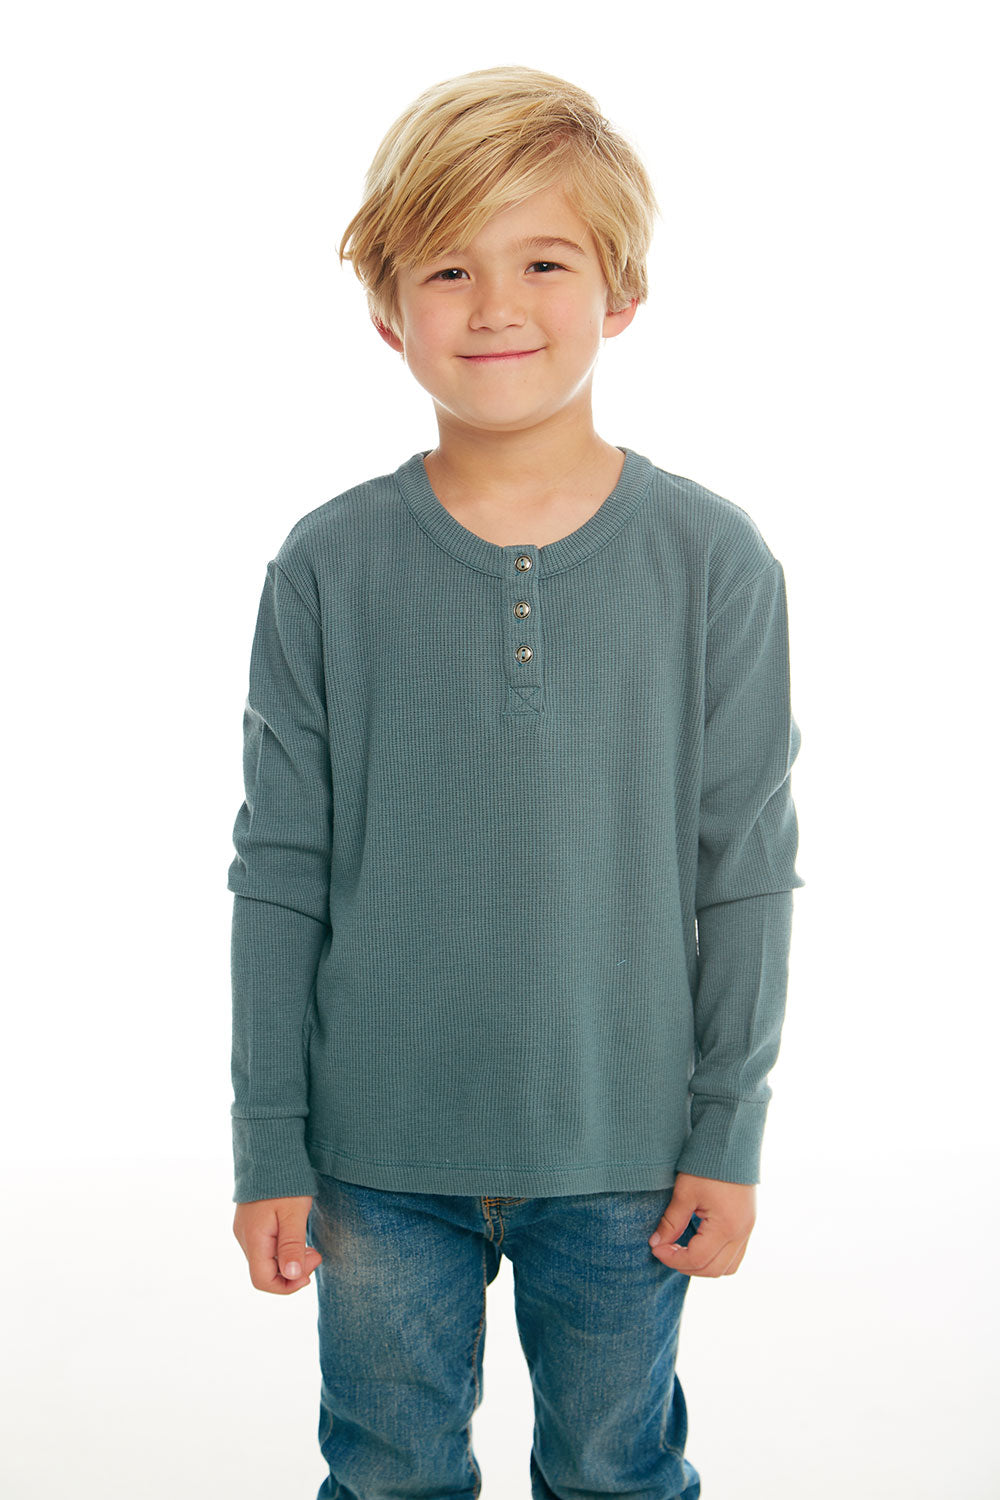 Boys Thermal Long Sleeve Henley, BOYS, chaserbrand.com,chaser clothing,chaser apparel,chaser los angeles